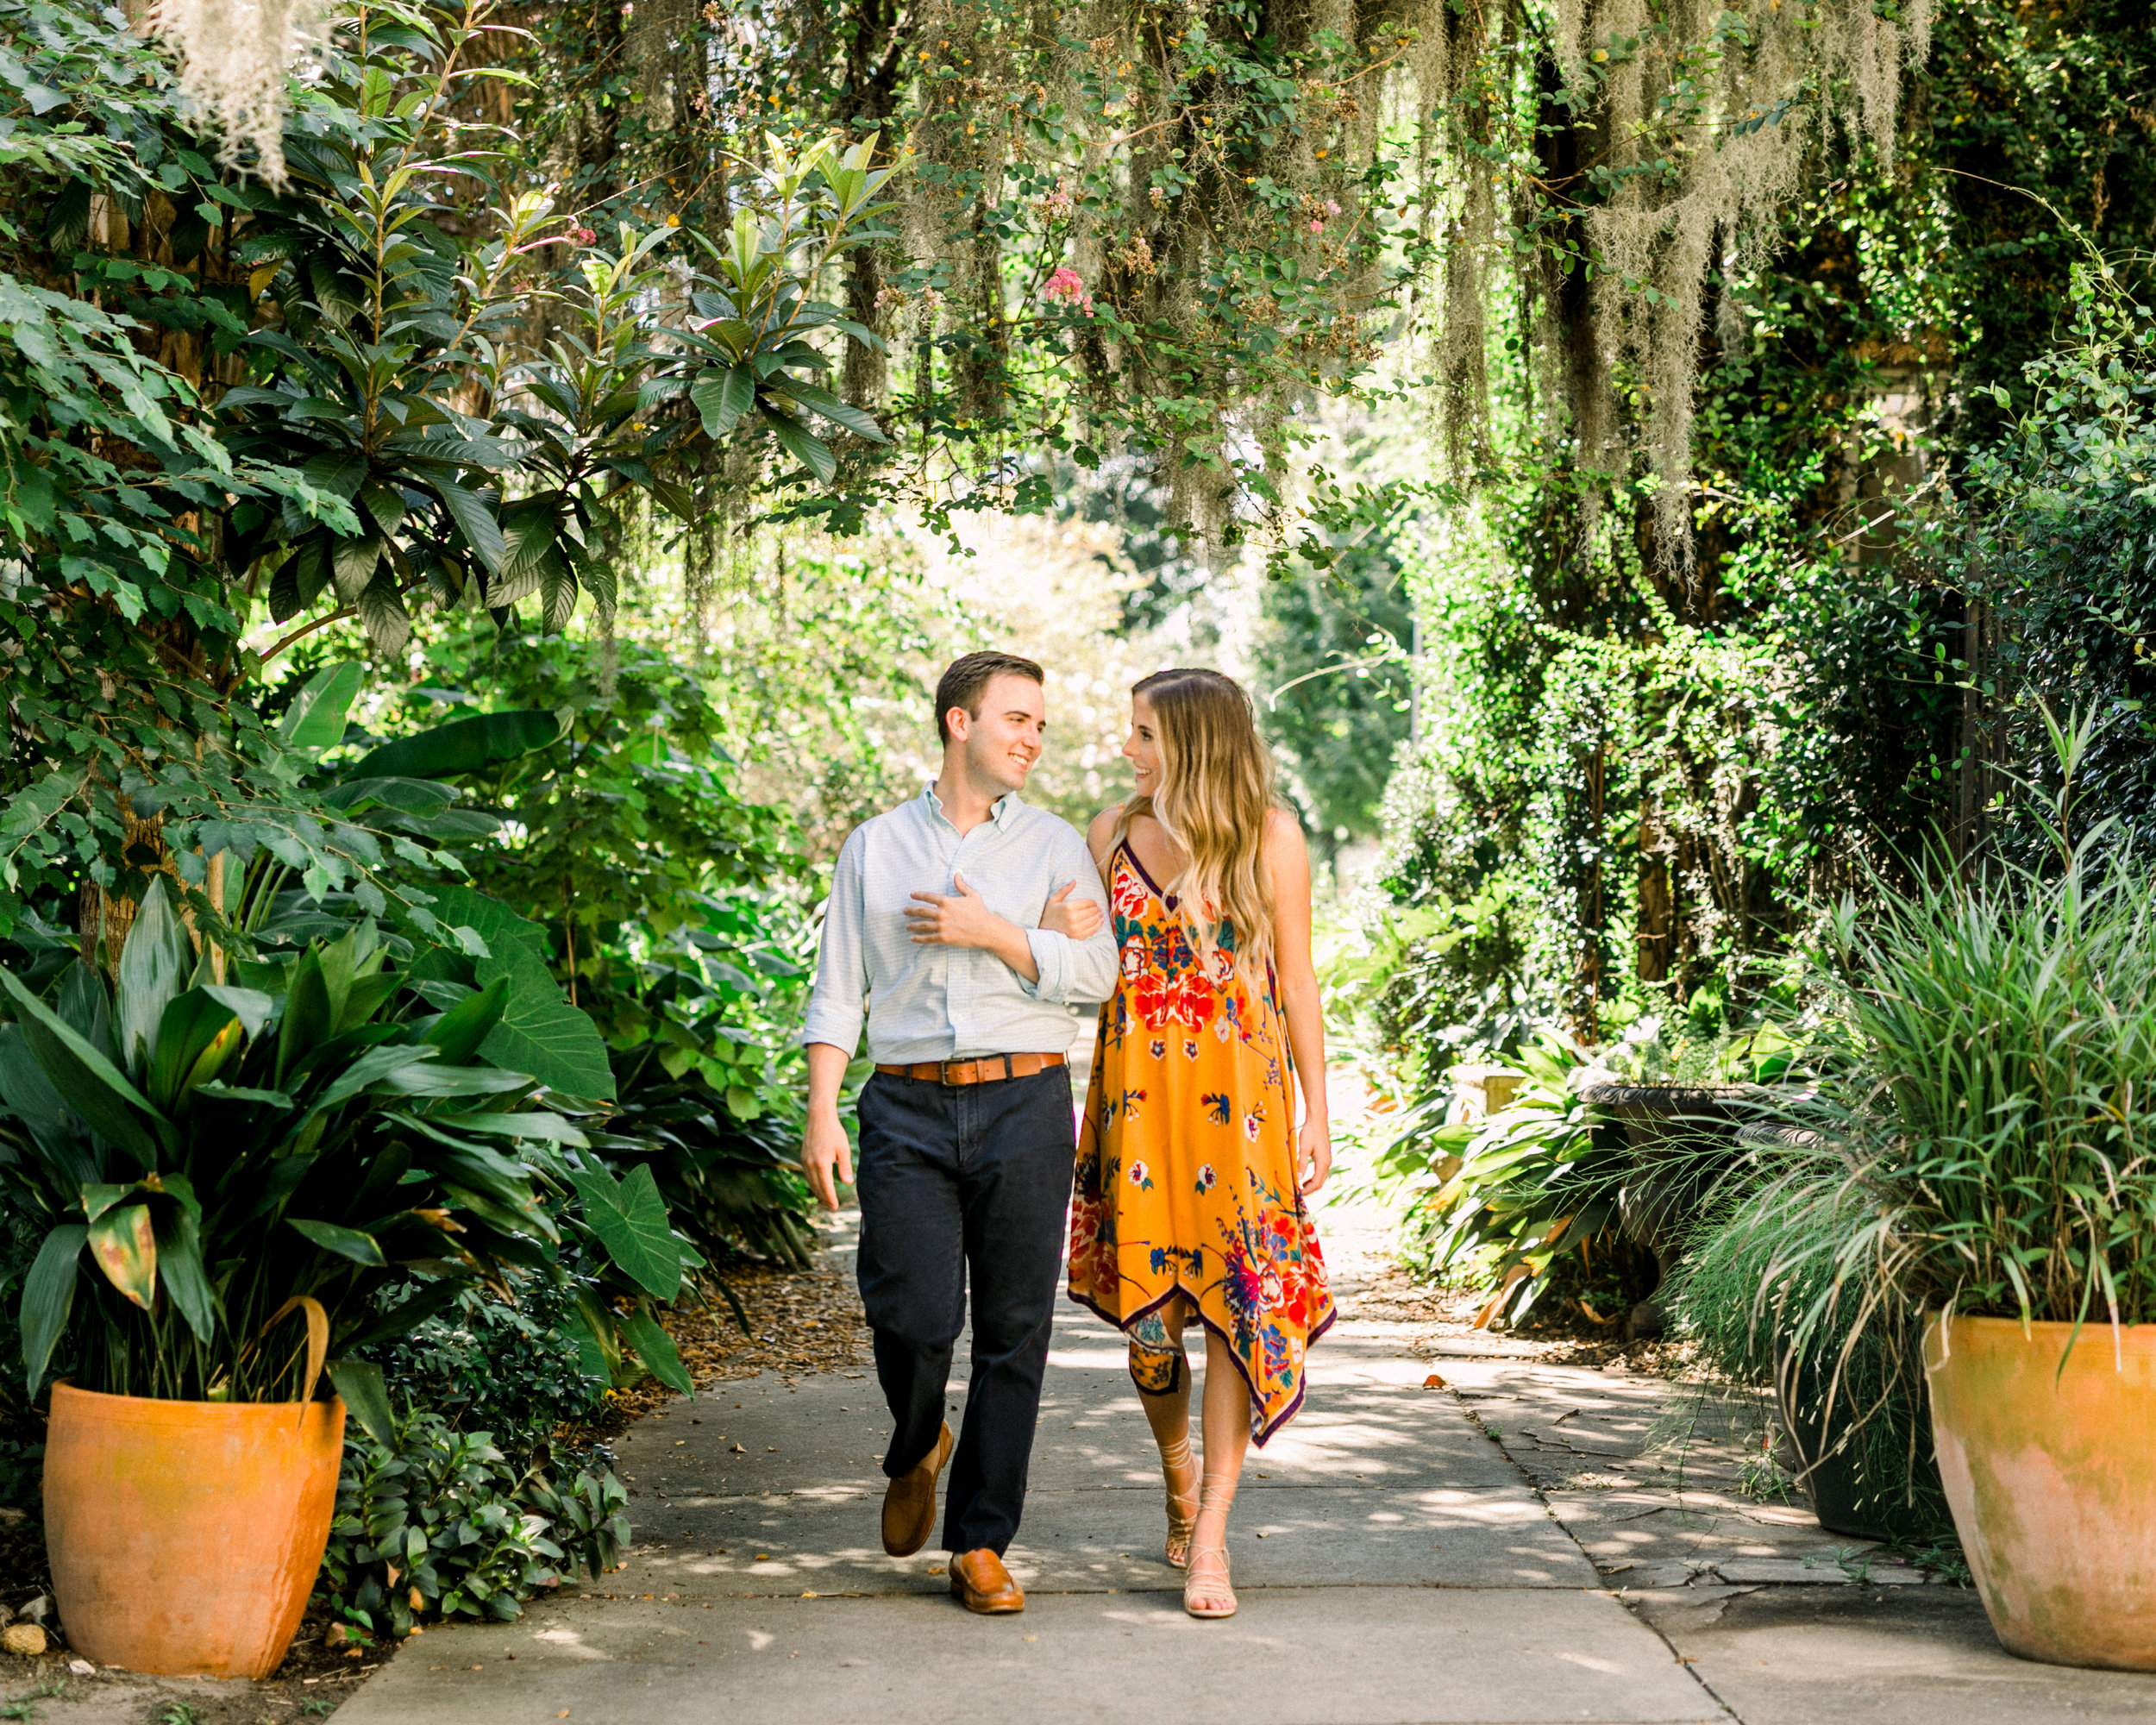 Best locations for engagement photos in savannah ga